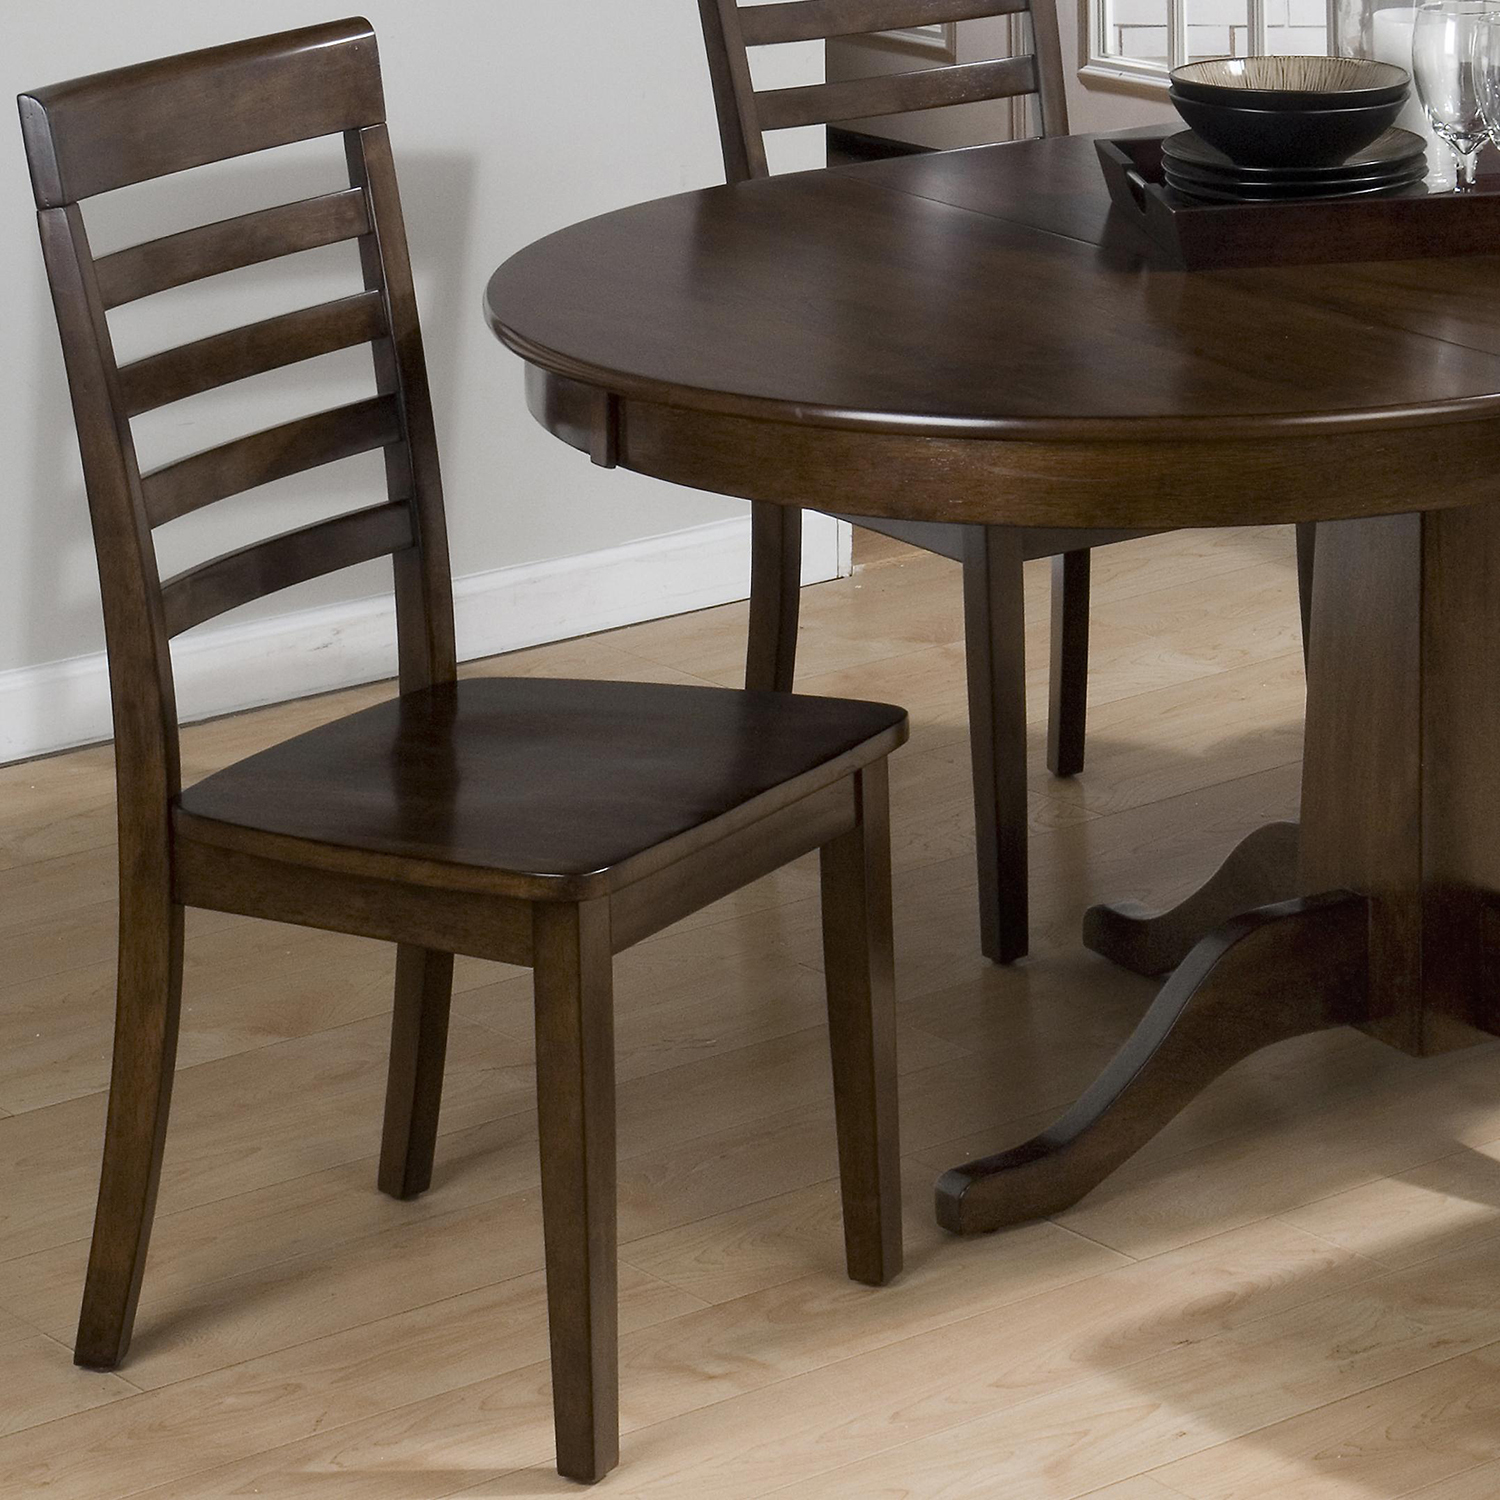 Richmond 5 Pieces Dining Set - Cherry - JOFR-342-60TBKT-912KD-SET